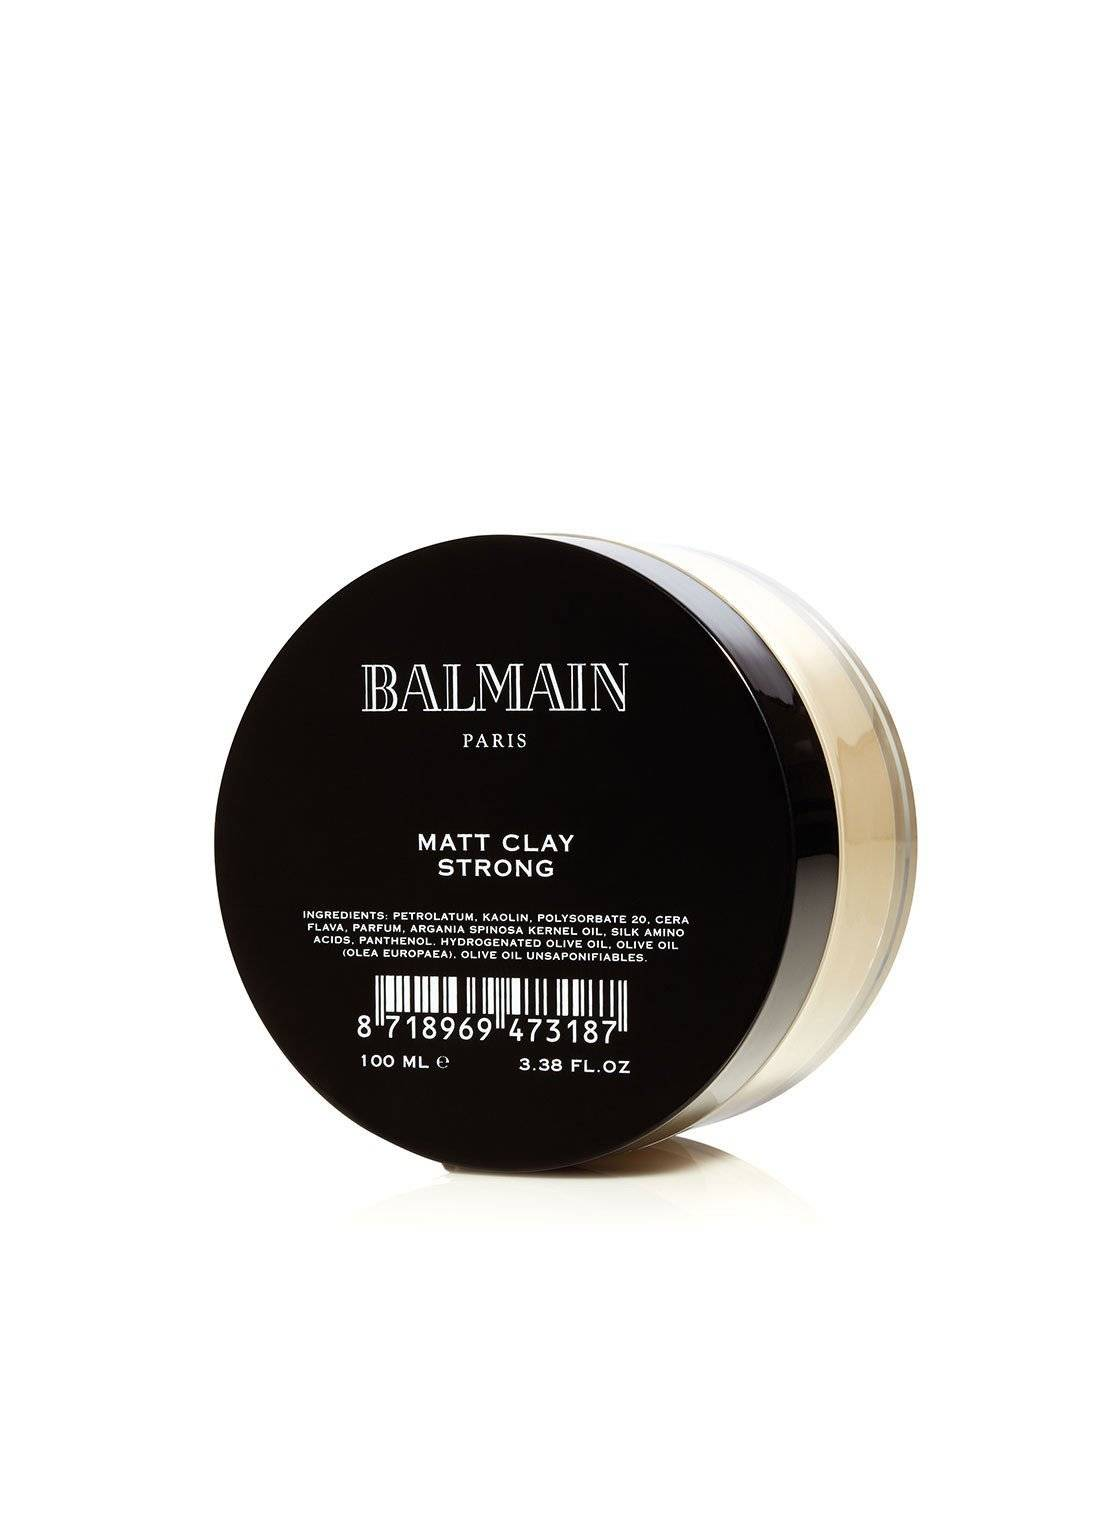 balmain paris hair couture Matt Clay Strong - coiffure -